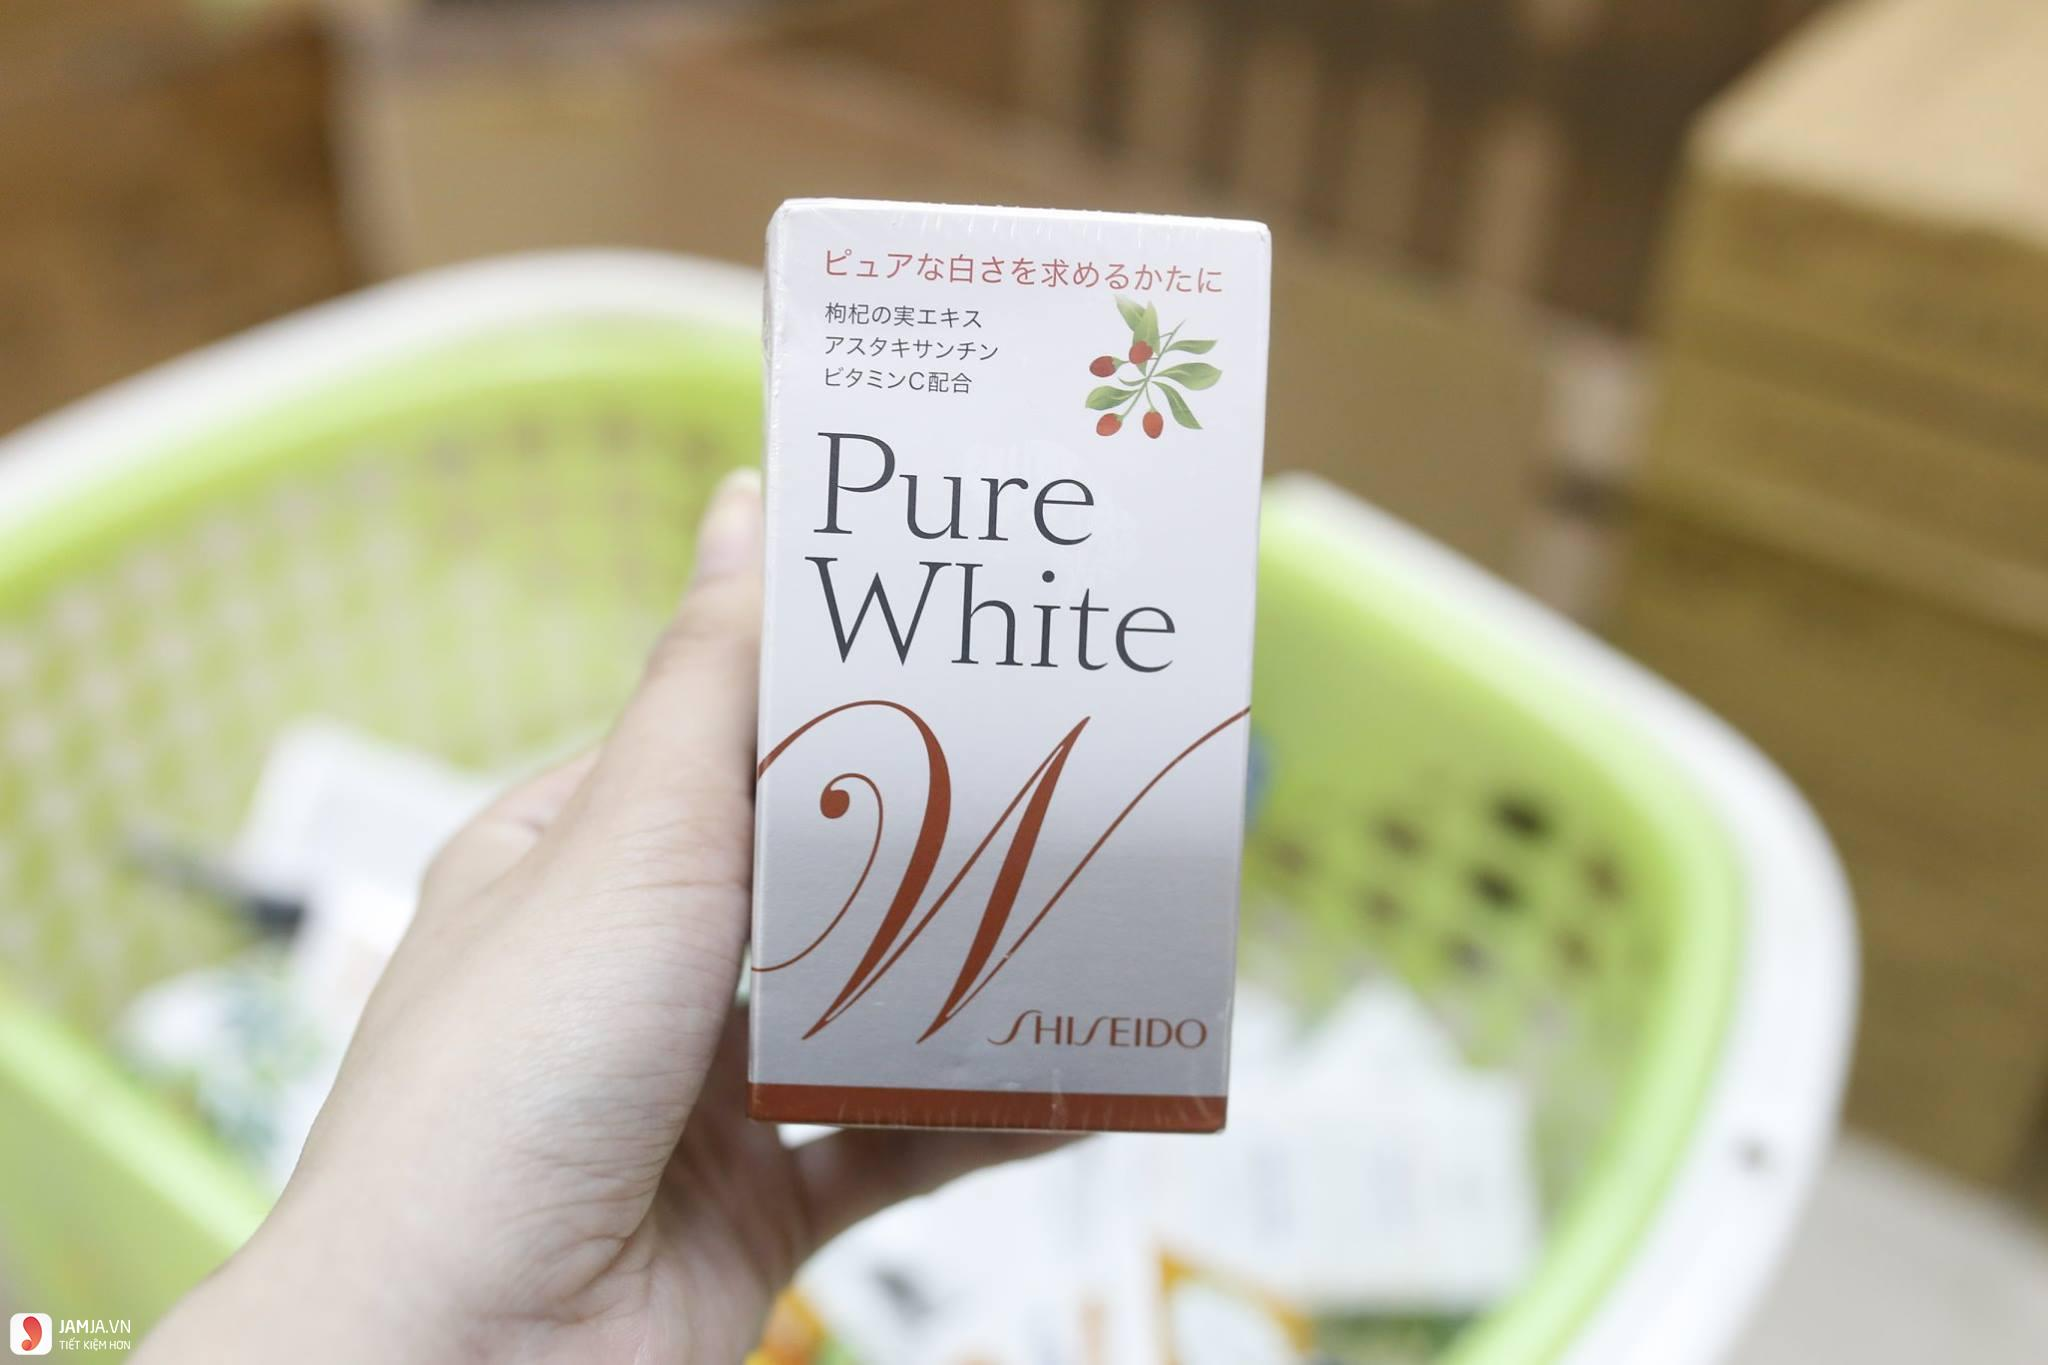 Shiseido Pure White 2